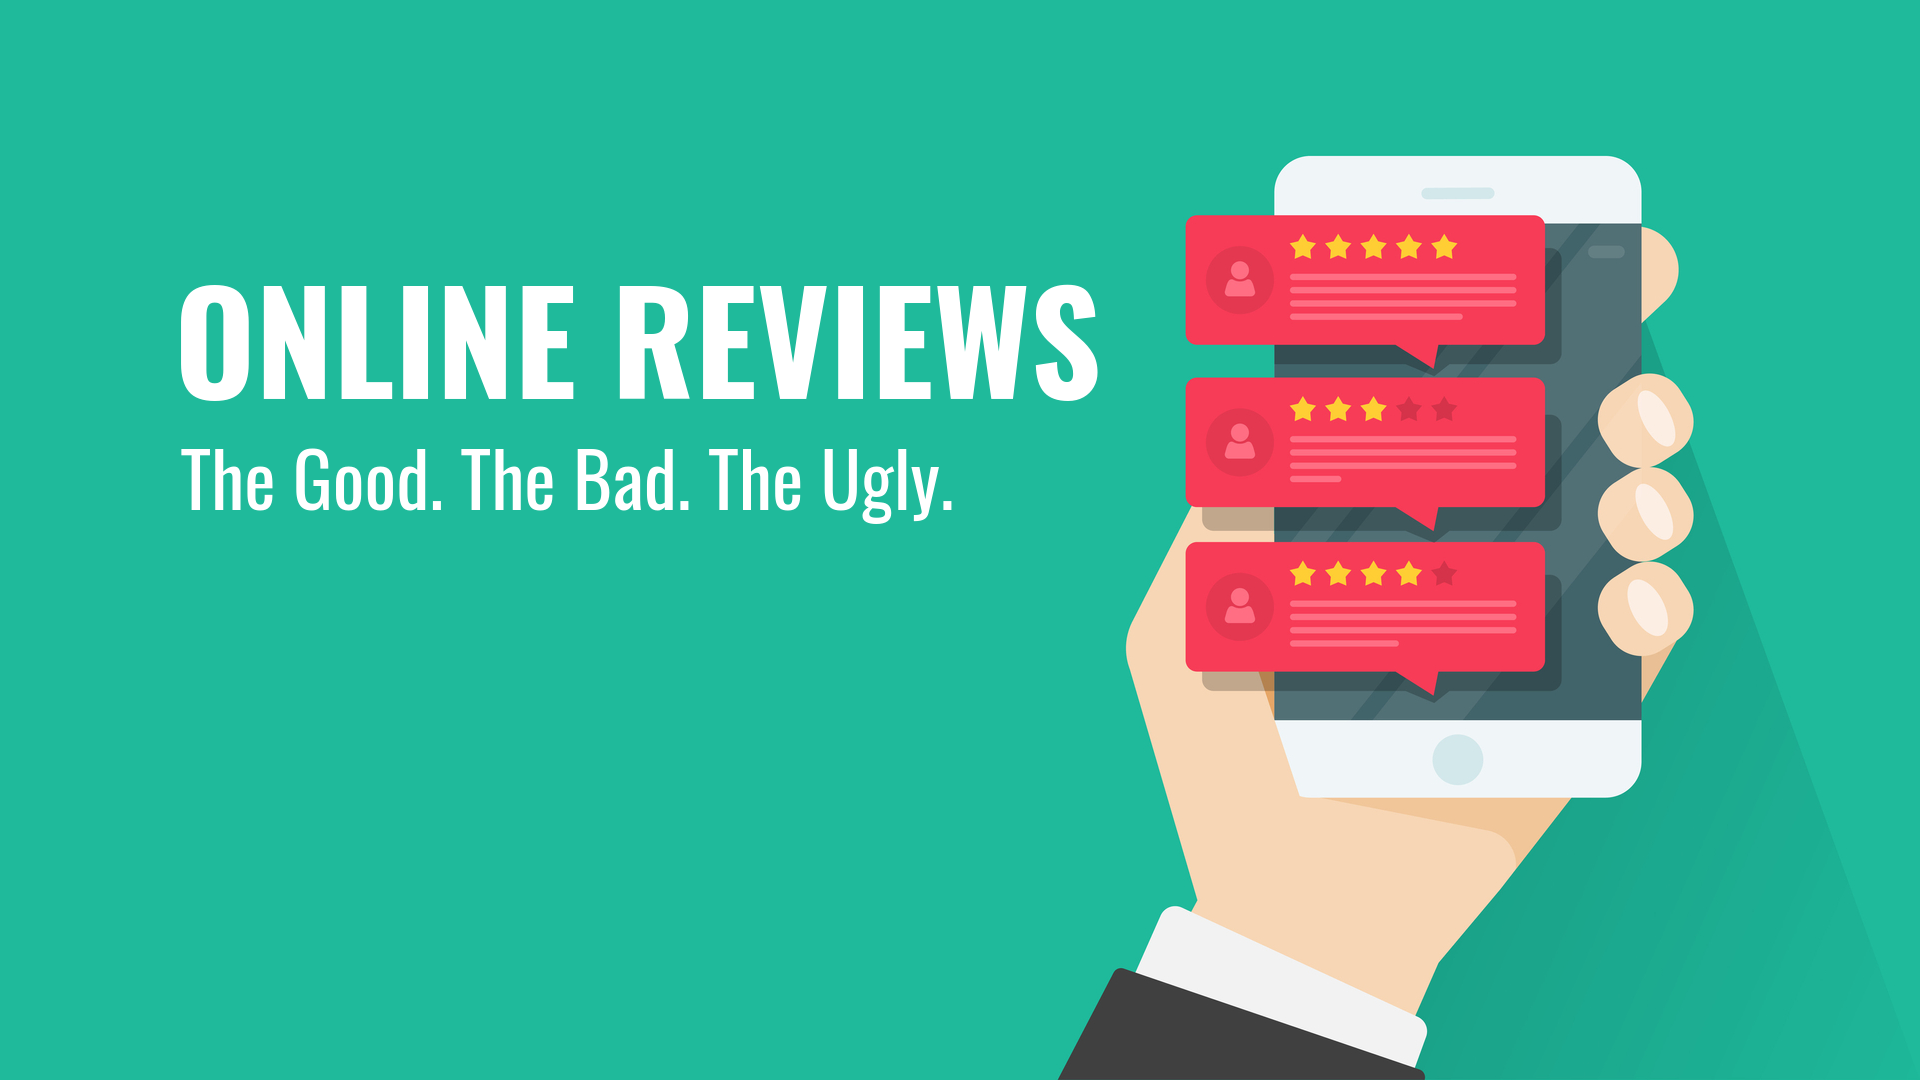 Online Reviews: The Good, The Bad, The Ugly